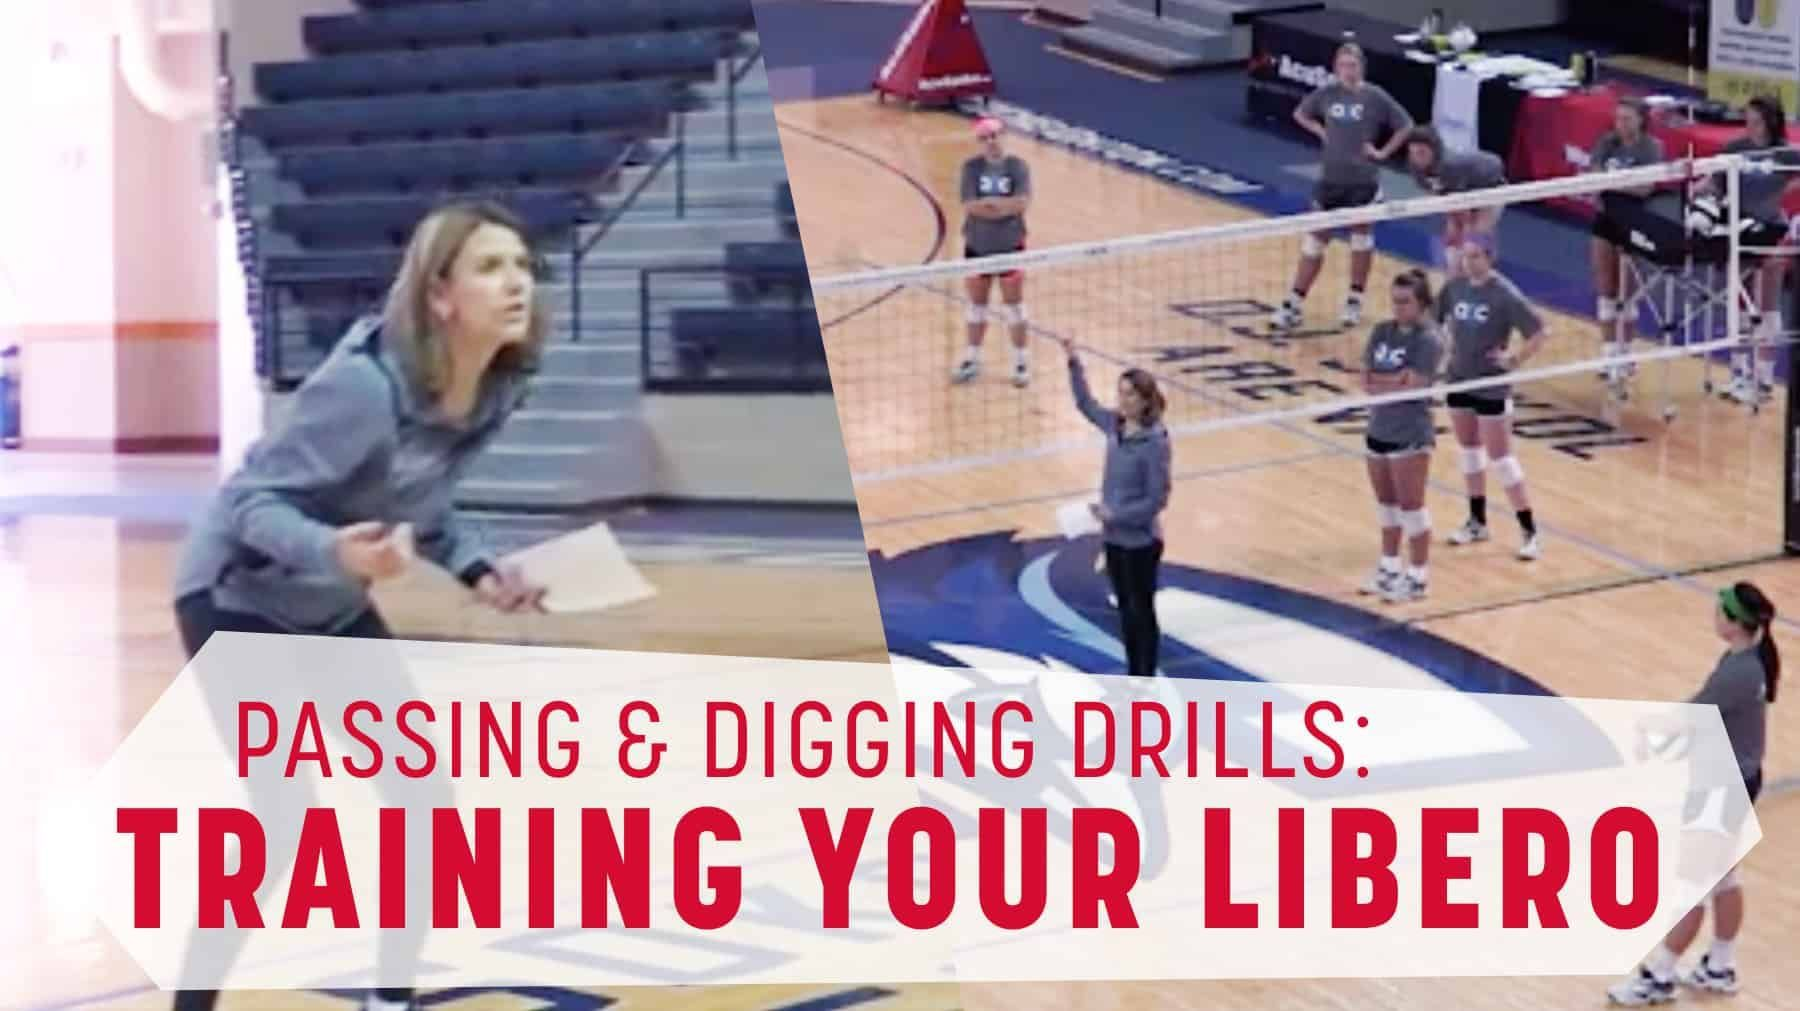 Training Your Libero Passing And Digging Tips Coaching Volleyball Volleyball Training Volleyball Drills